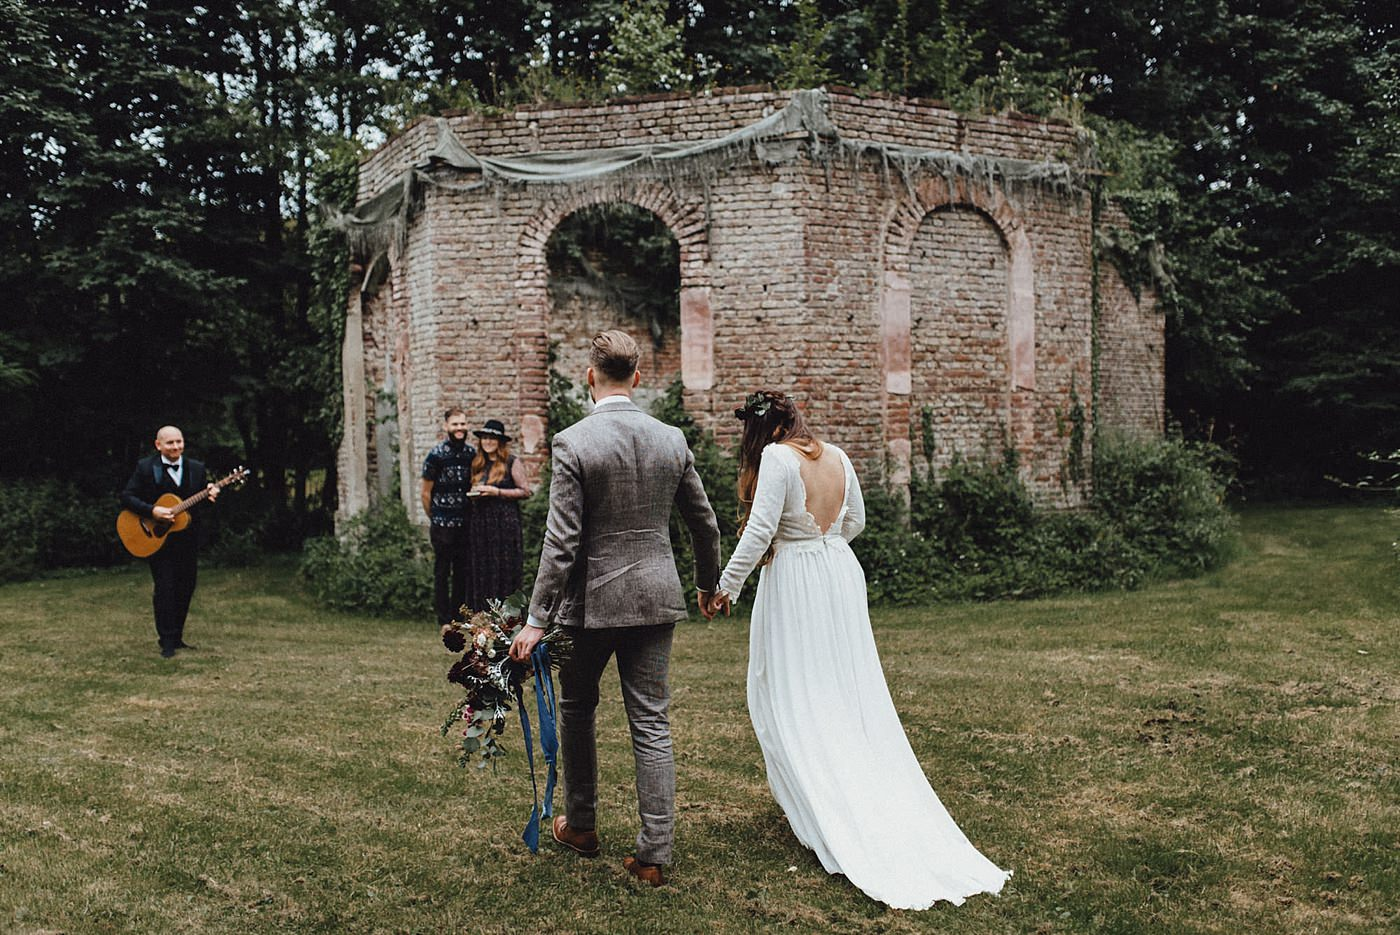 urban-elopement-wedding-112 Merve & Nils emotionales Elopement - Wedding Wesel & Schottlandurban elopement wedding 112 1